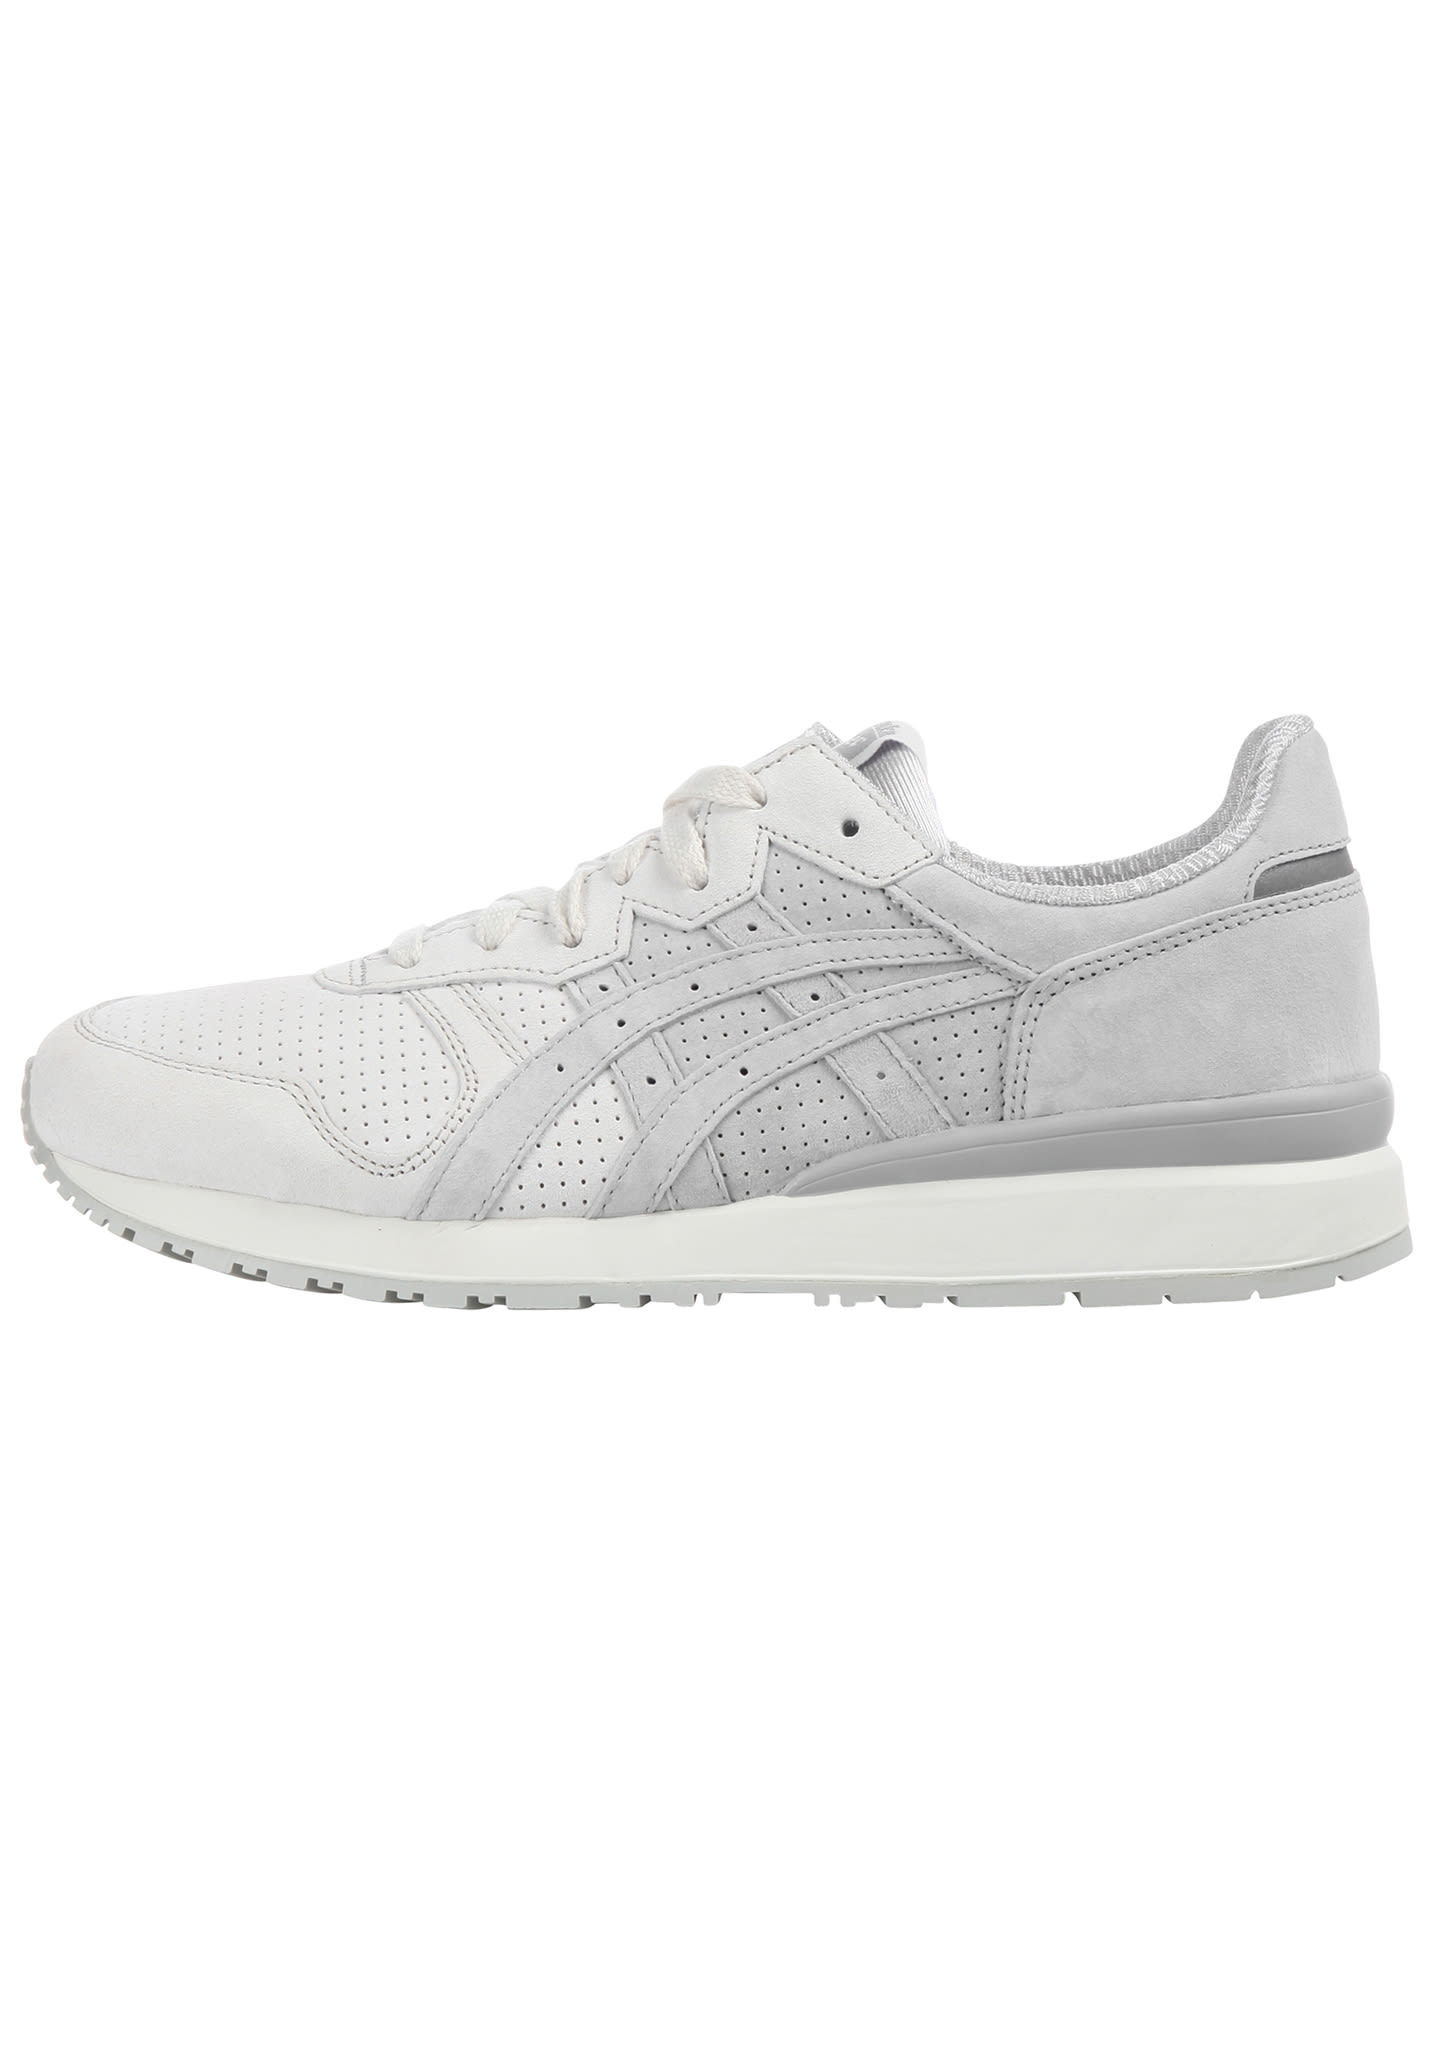 detailed look ec5a6 79bee Onitsuka Tiger Tiger Ally - Sneakers - Grey